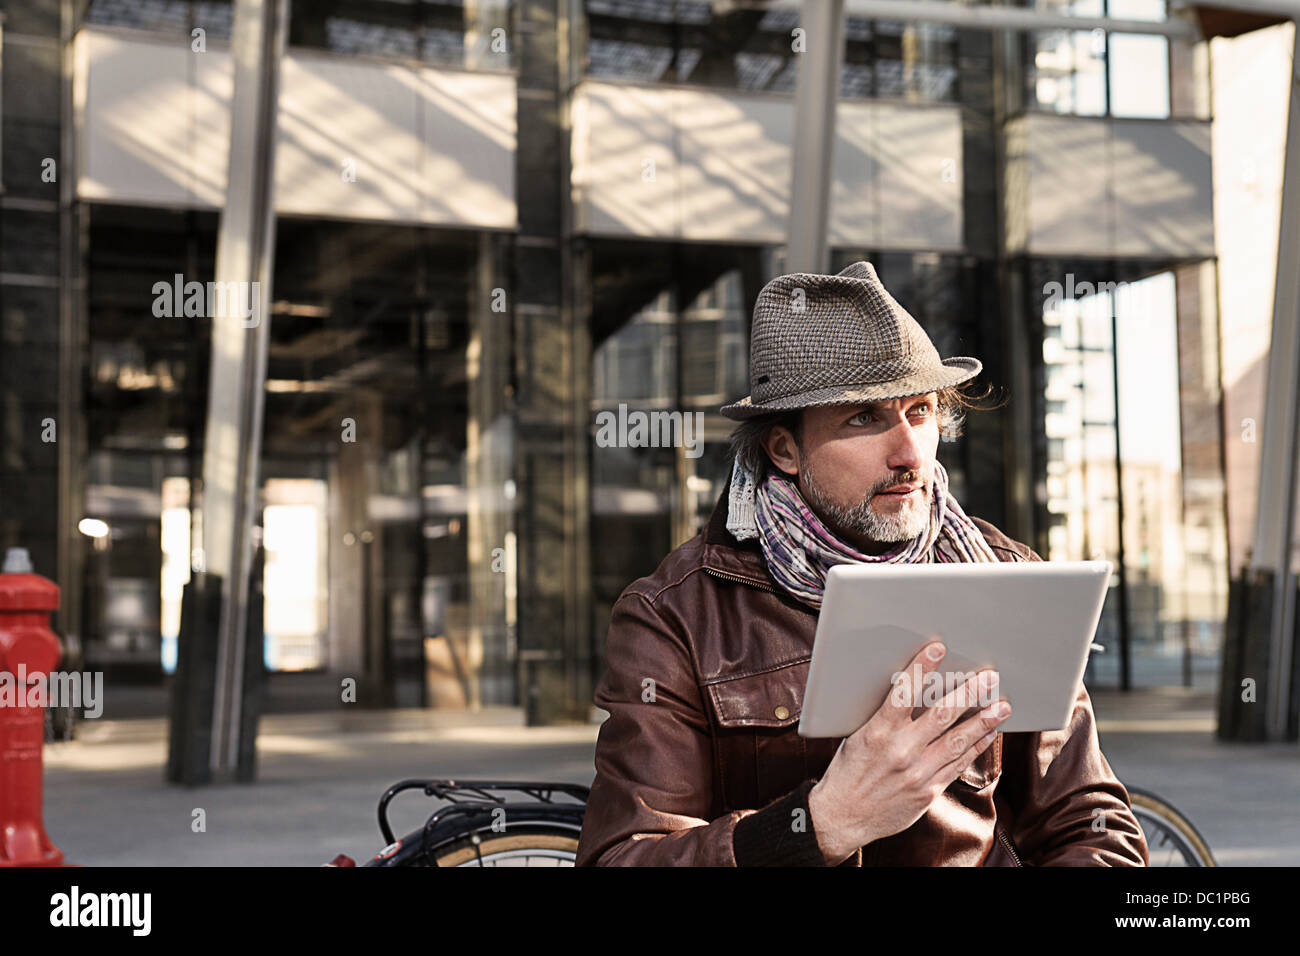 Mid adult man using digital tablet and looking away - Stock Image